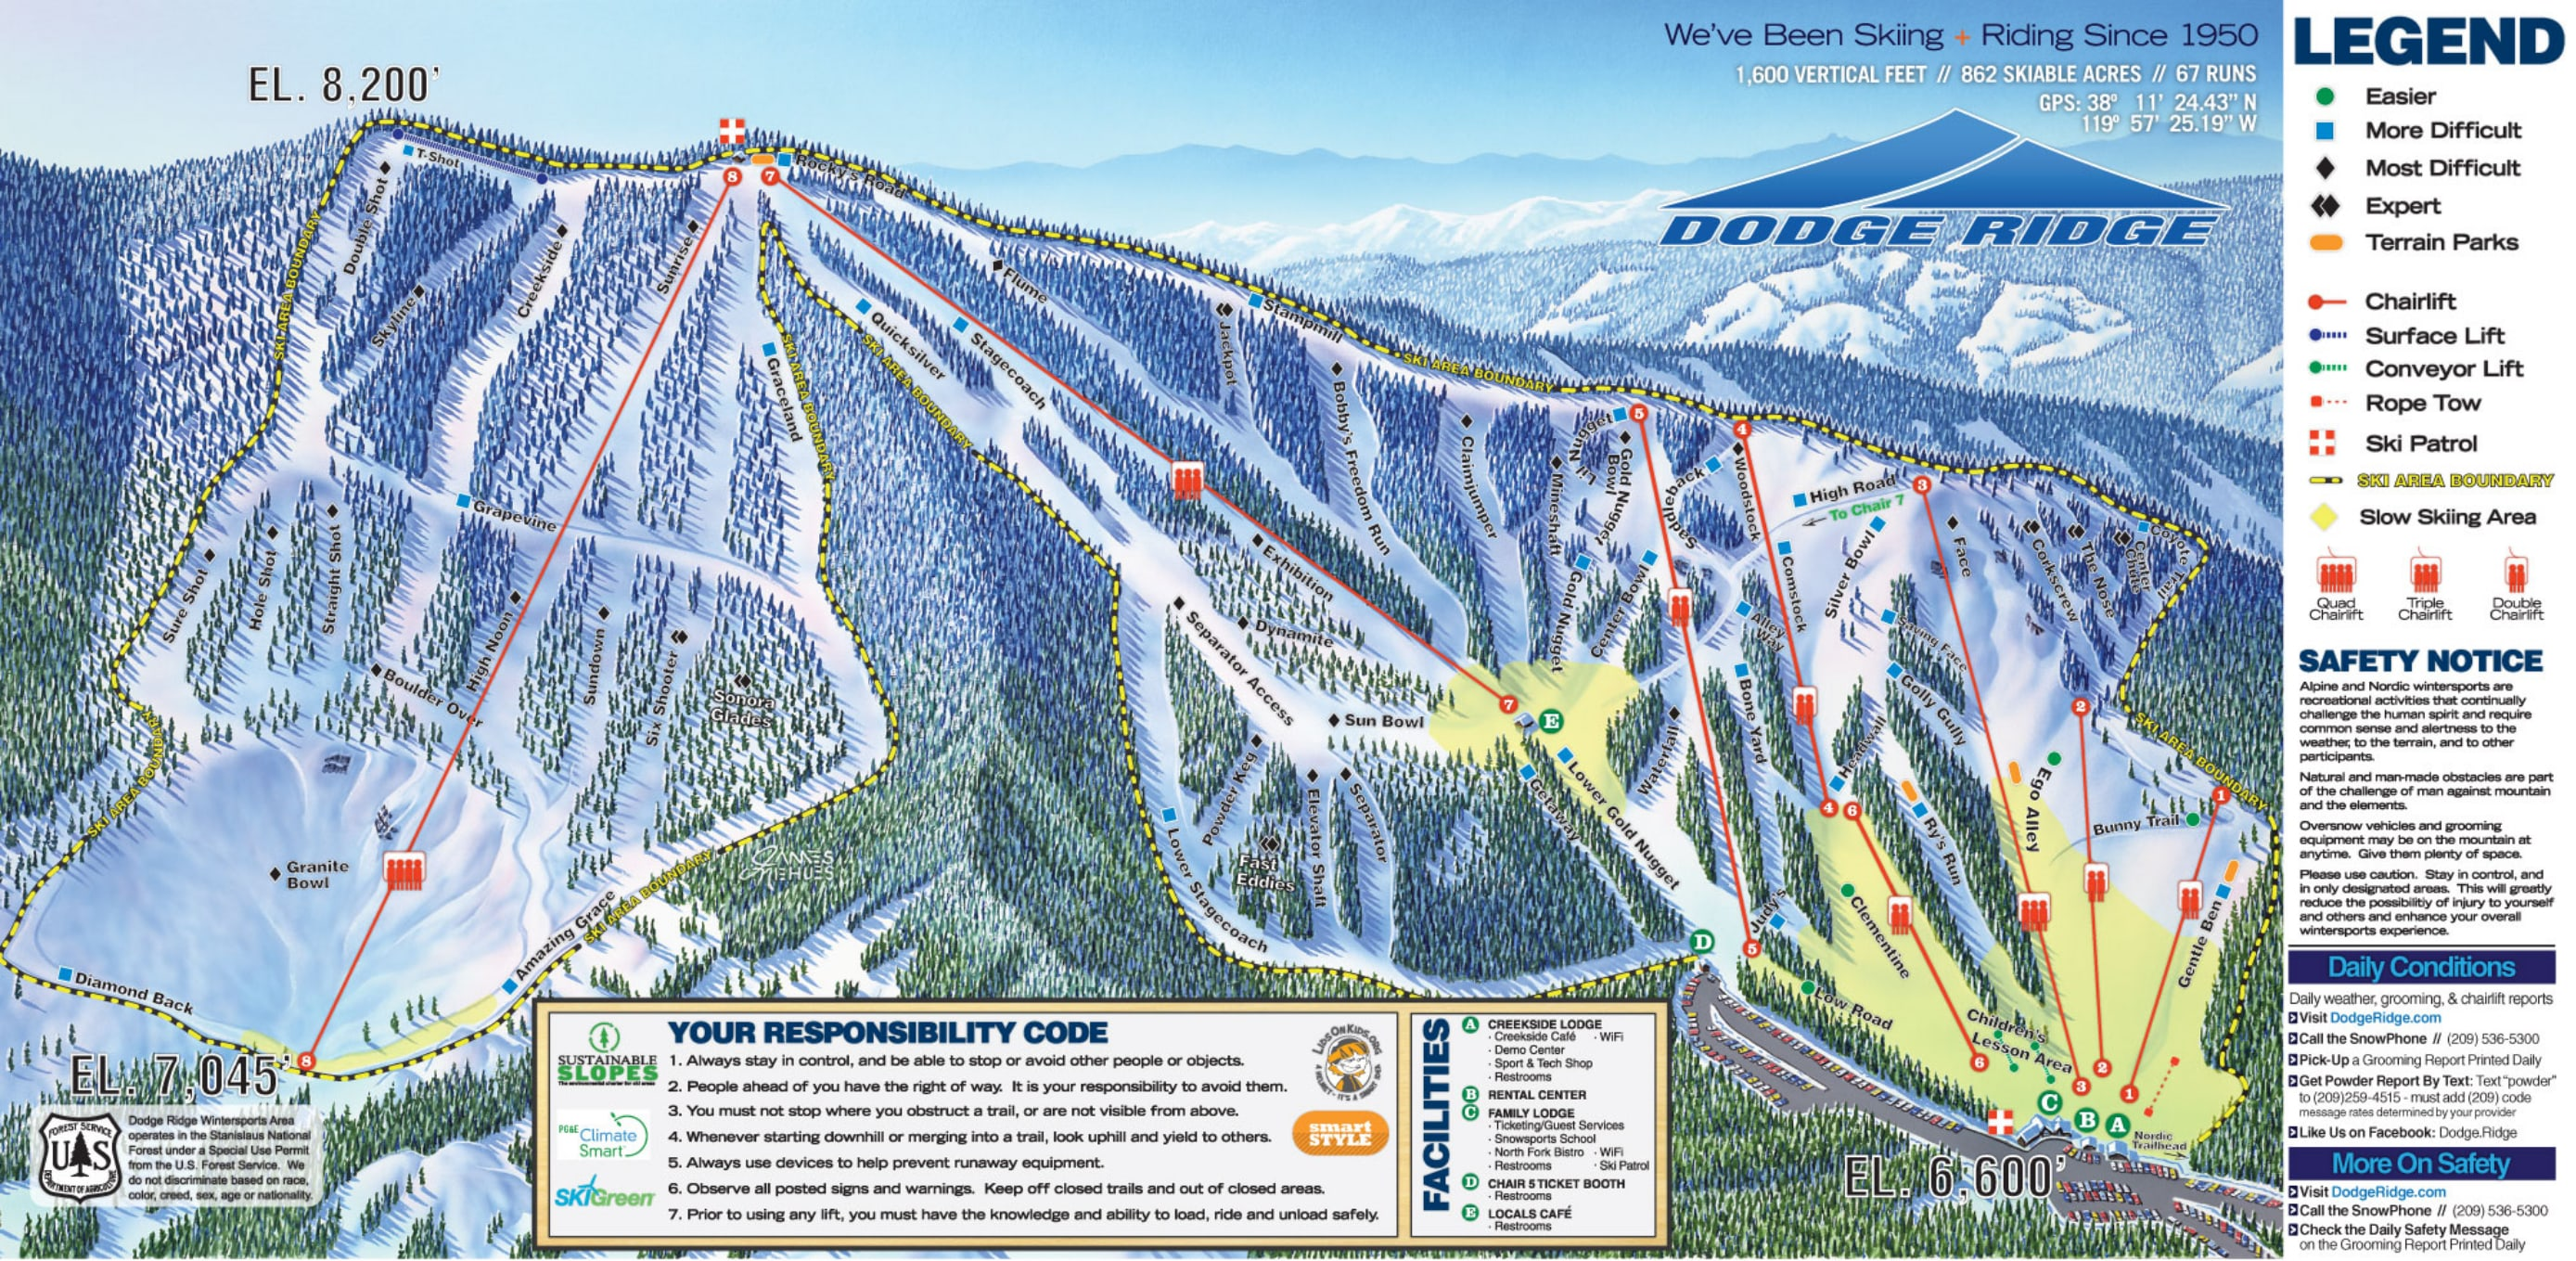 Dodge Ridge Piste / Trail Map